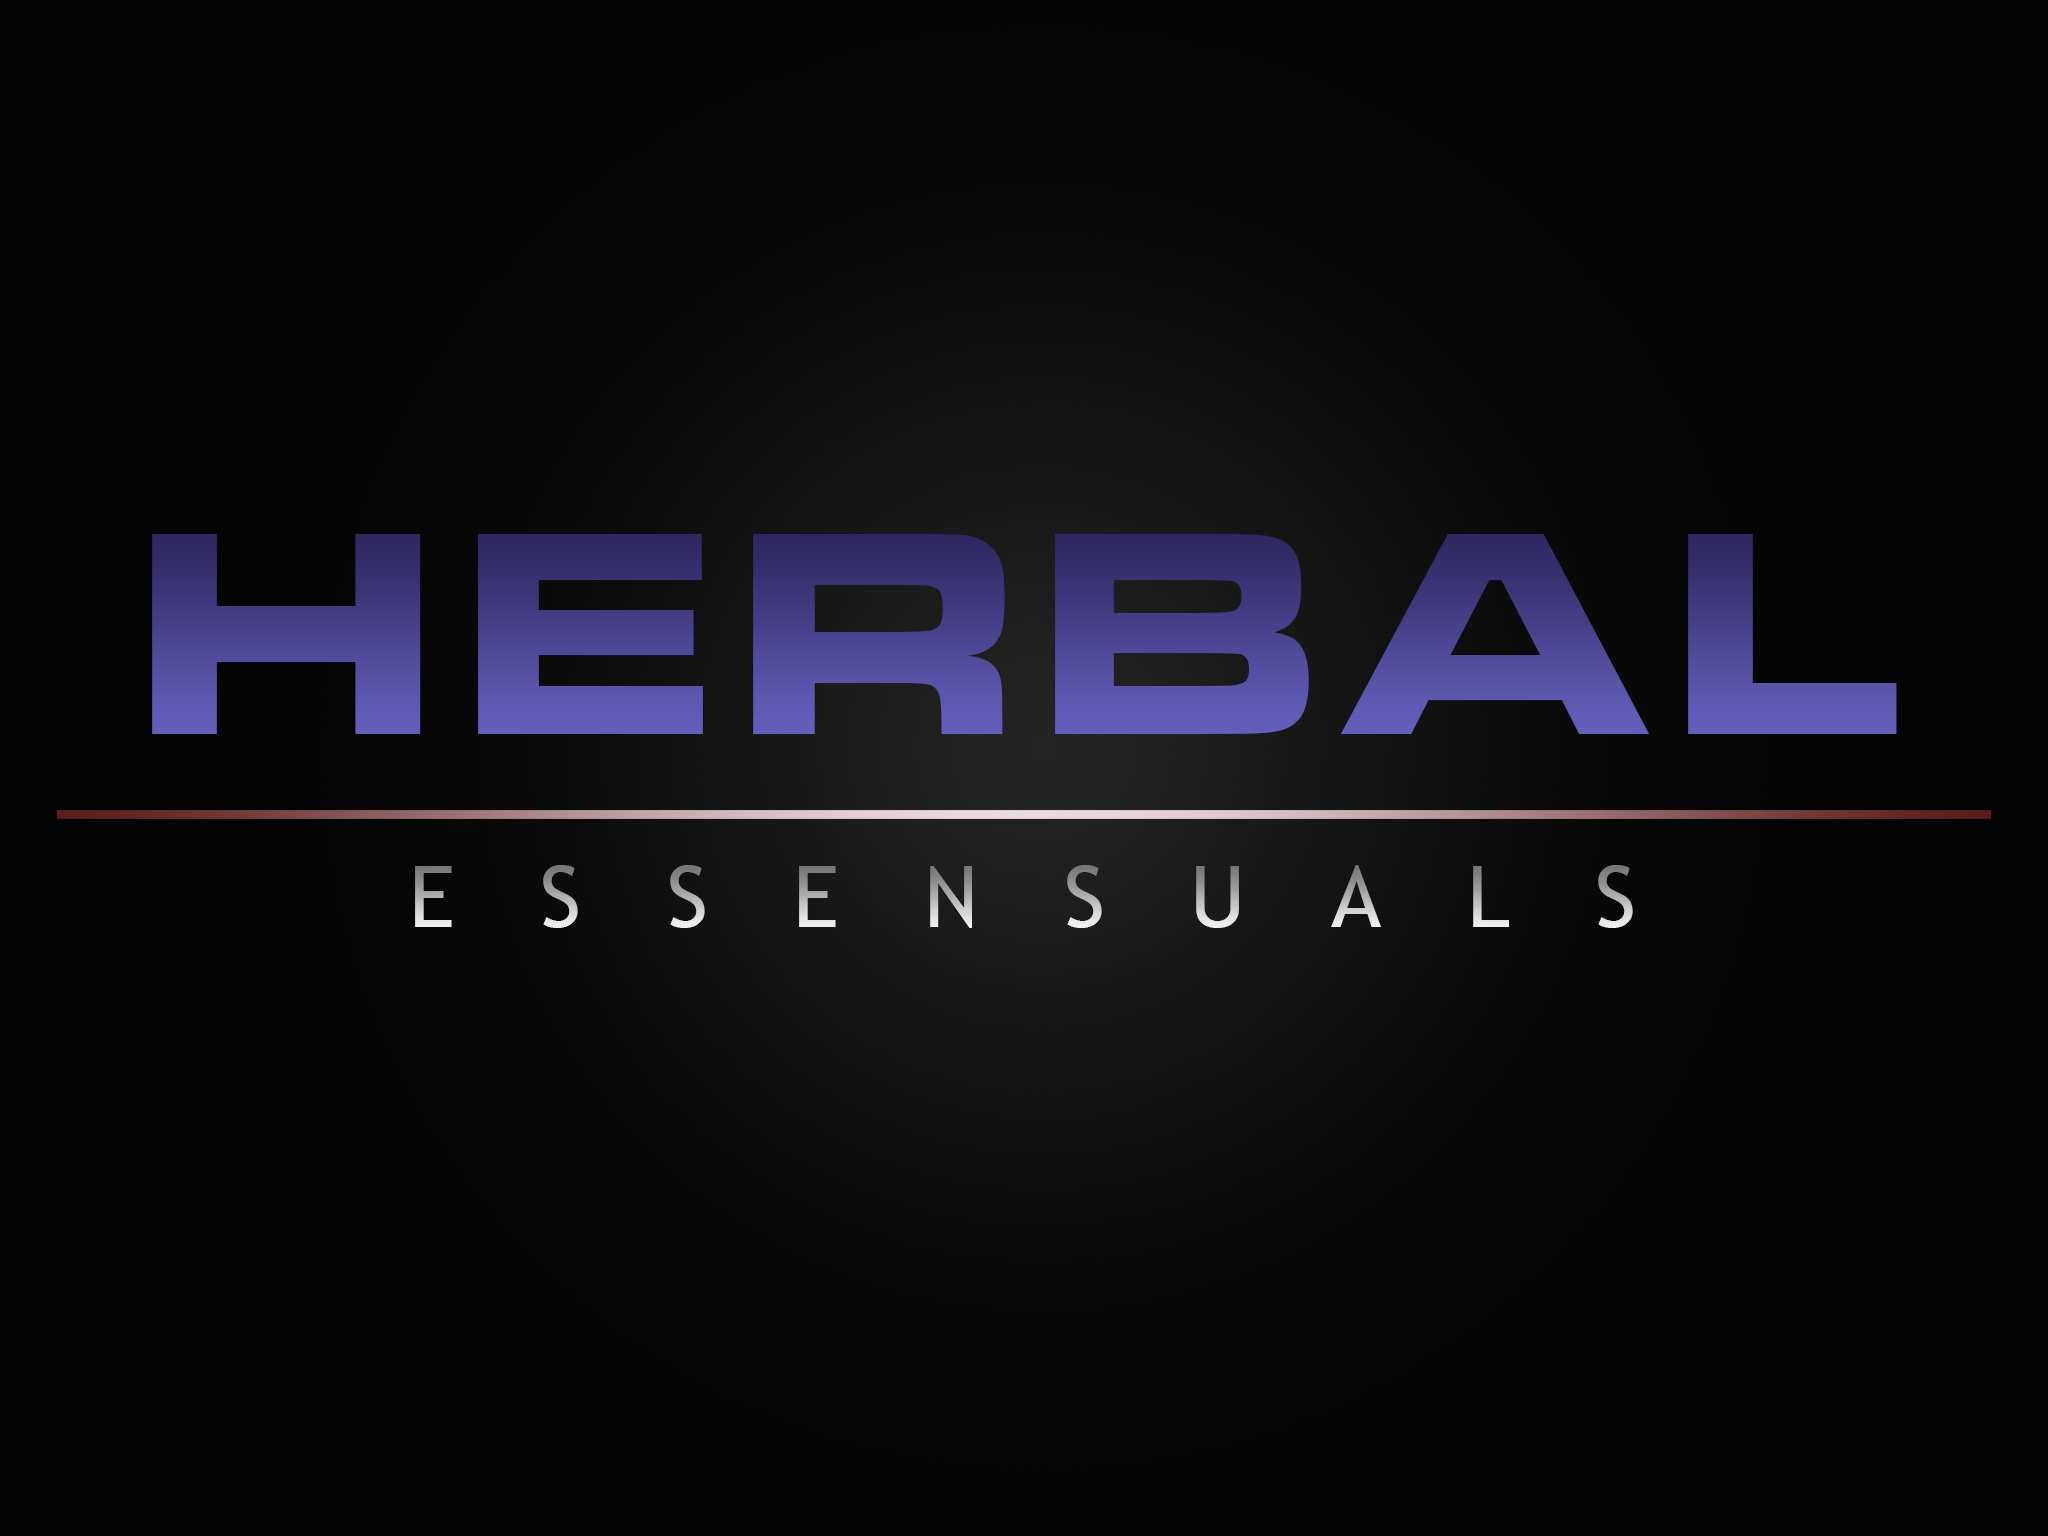 Logo Design by Viral Ramani - Entry No. 90 in the Logo Design Contest Captivating Logo Design for Herbal Essensuals.